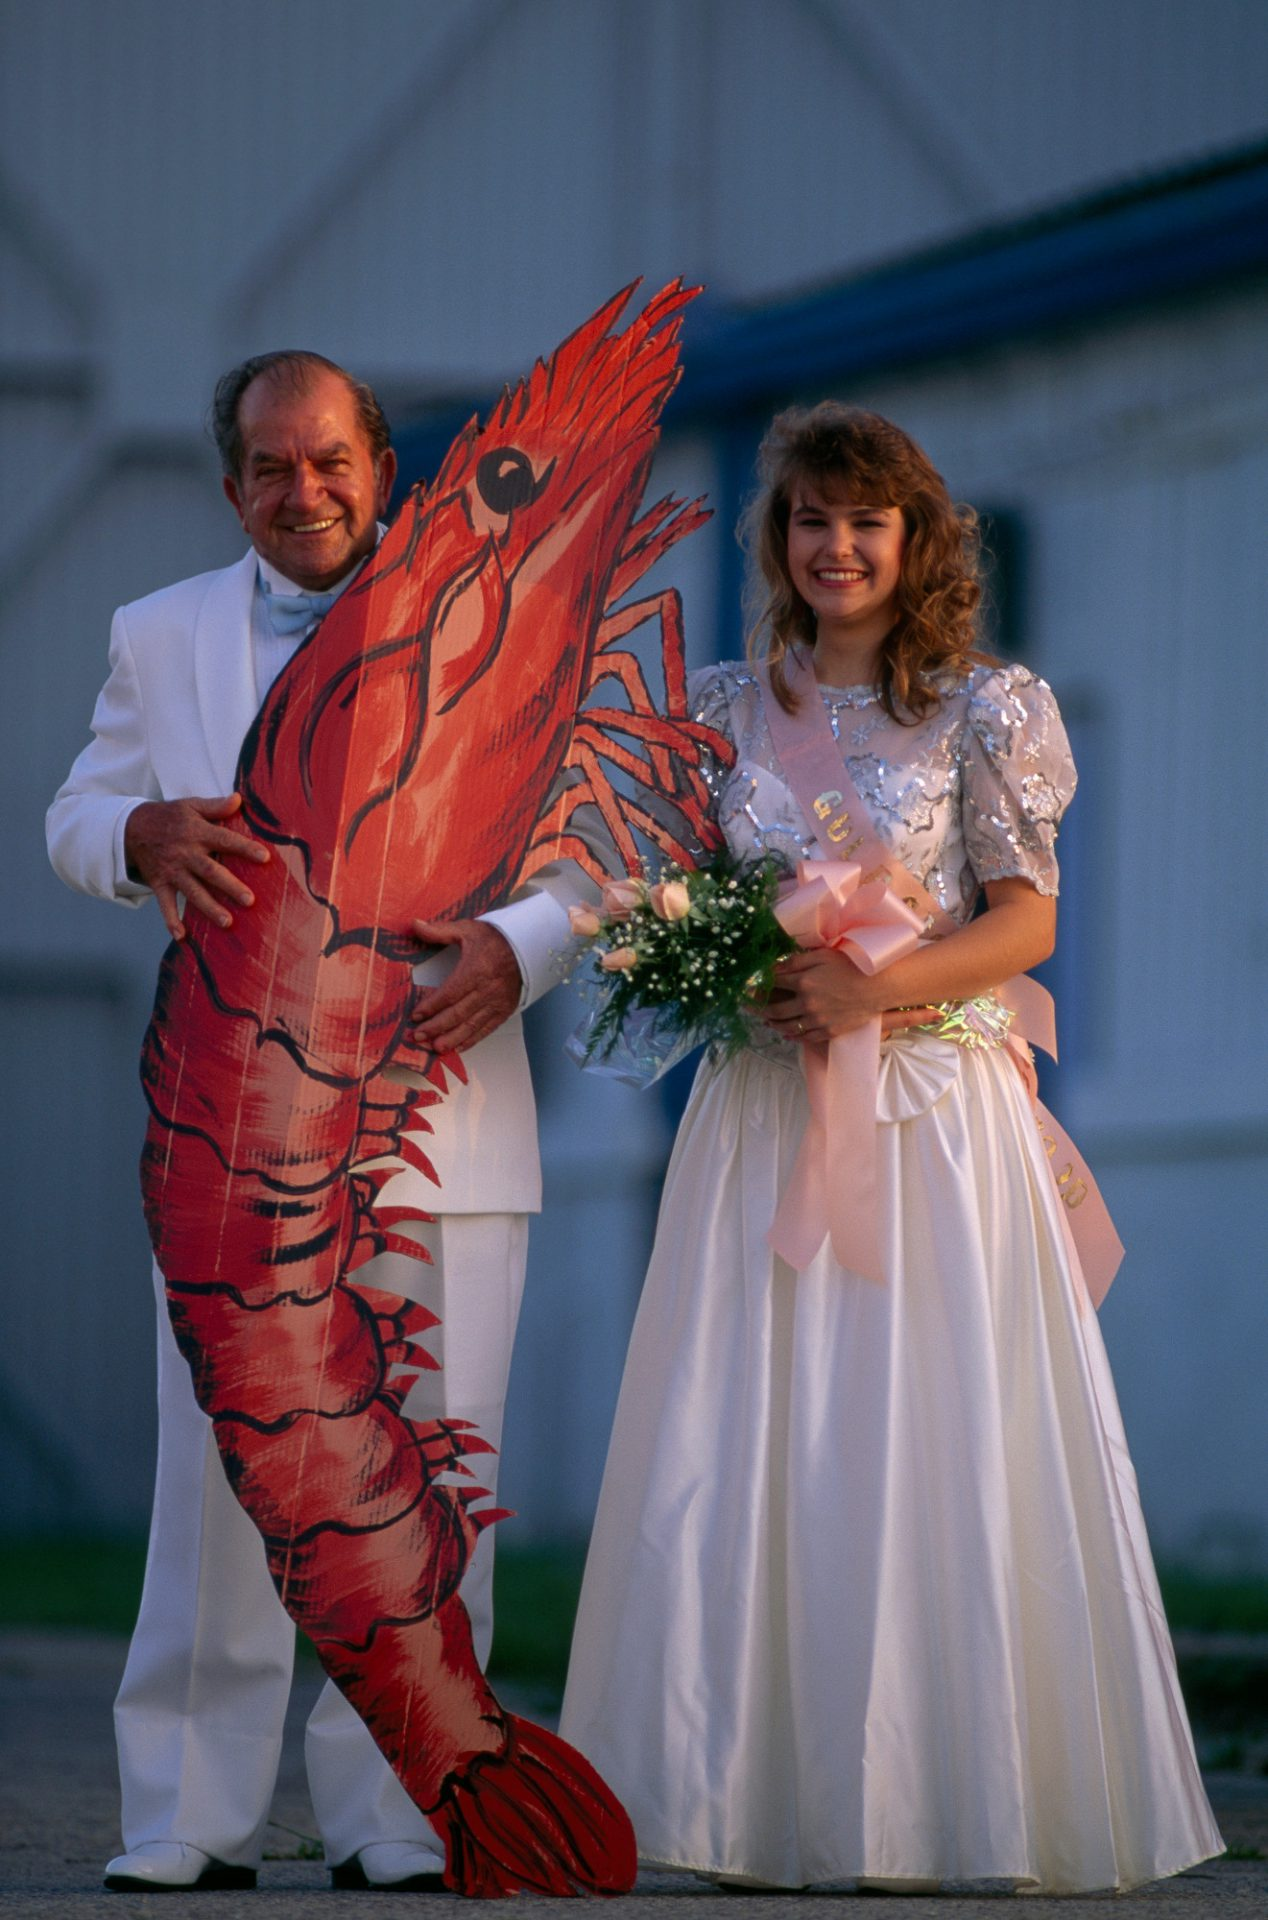 Photo: The king and queen of the Shrimp festival in Biloxi, Mississippi, pose with a cardboard shrimp while presiding over a Cajun-style fais-dodo, or country dance.